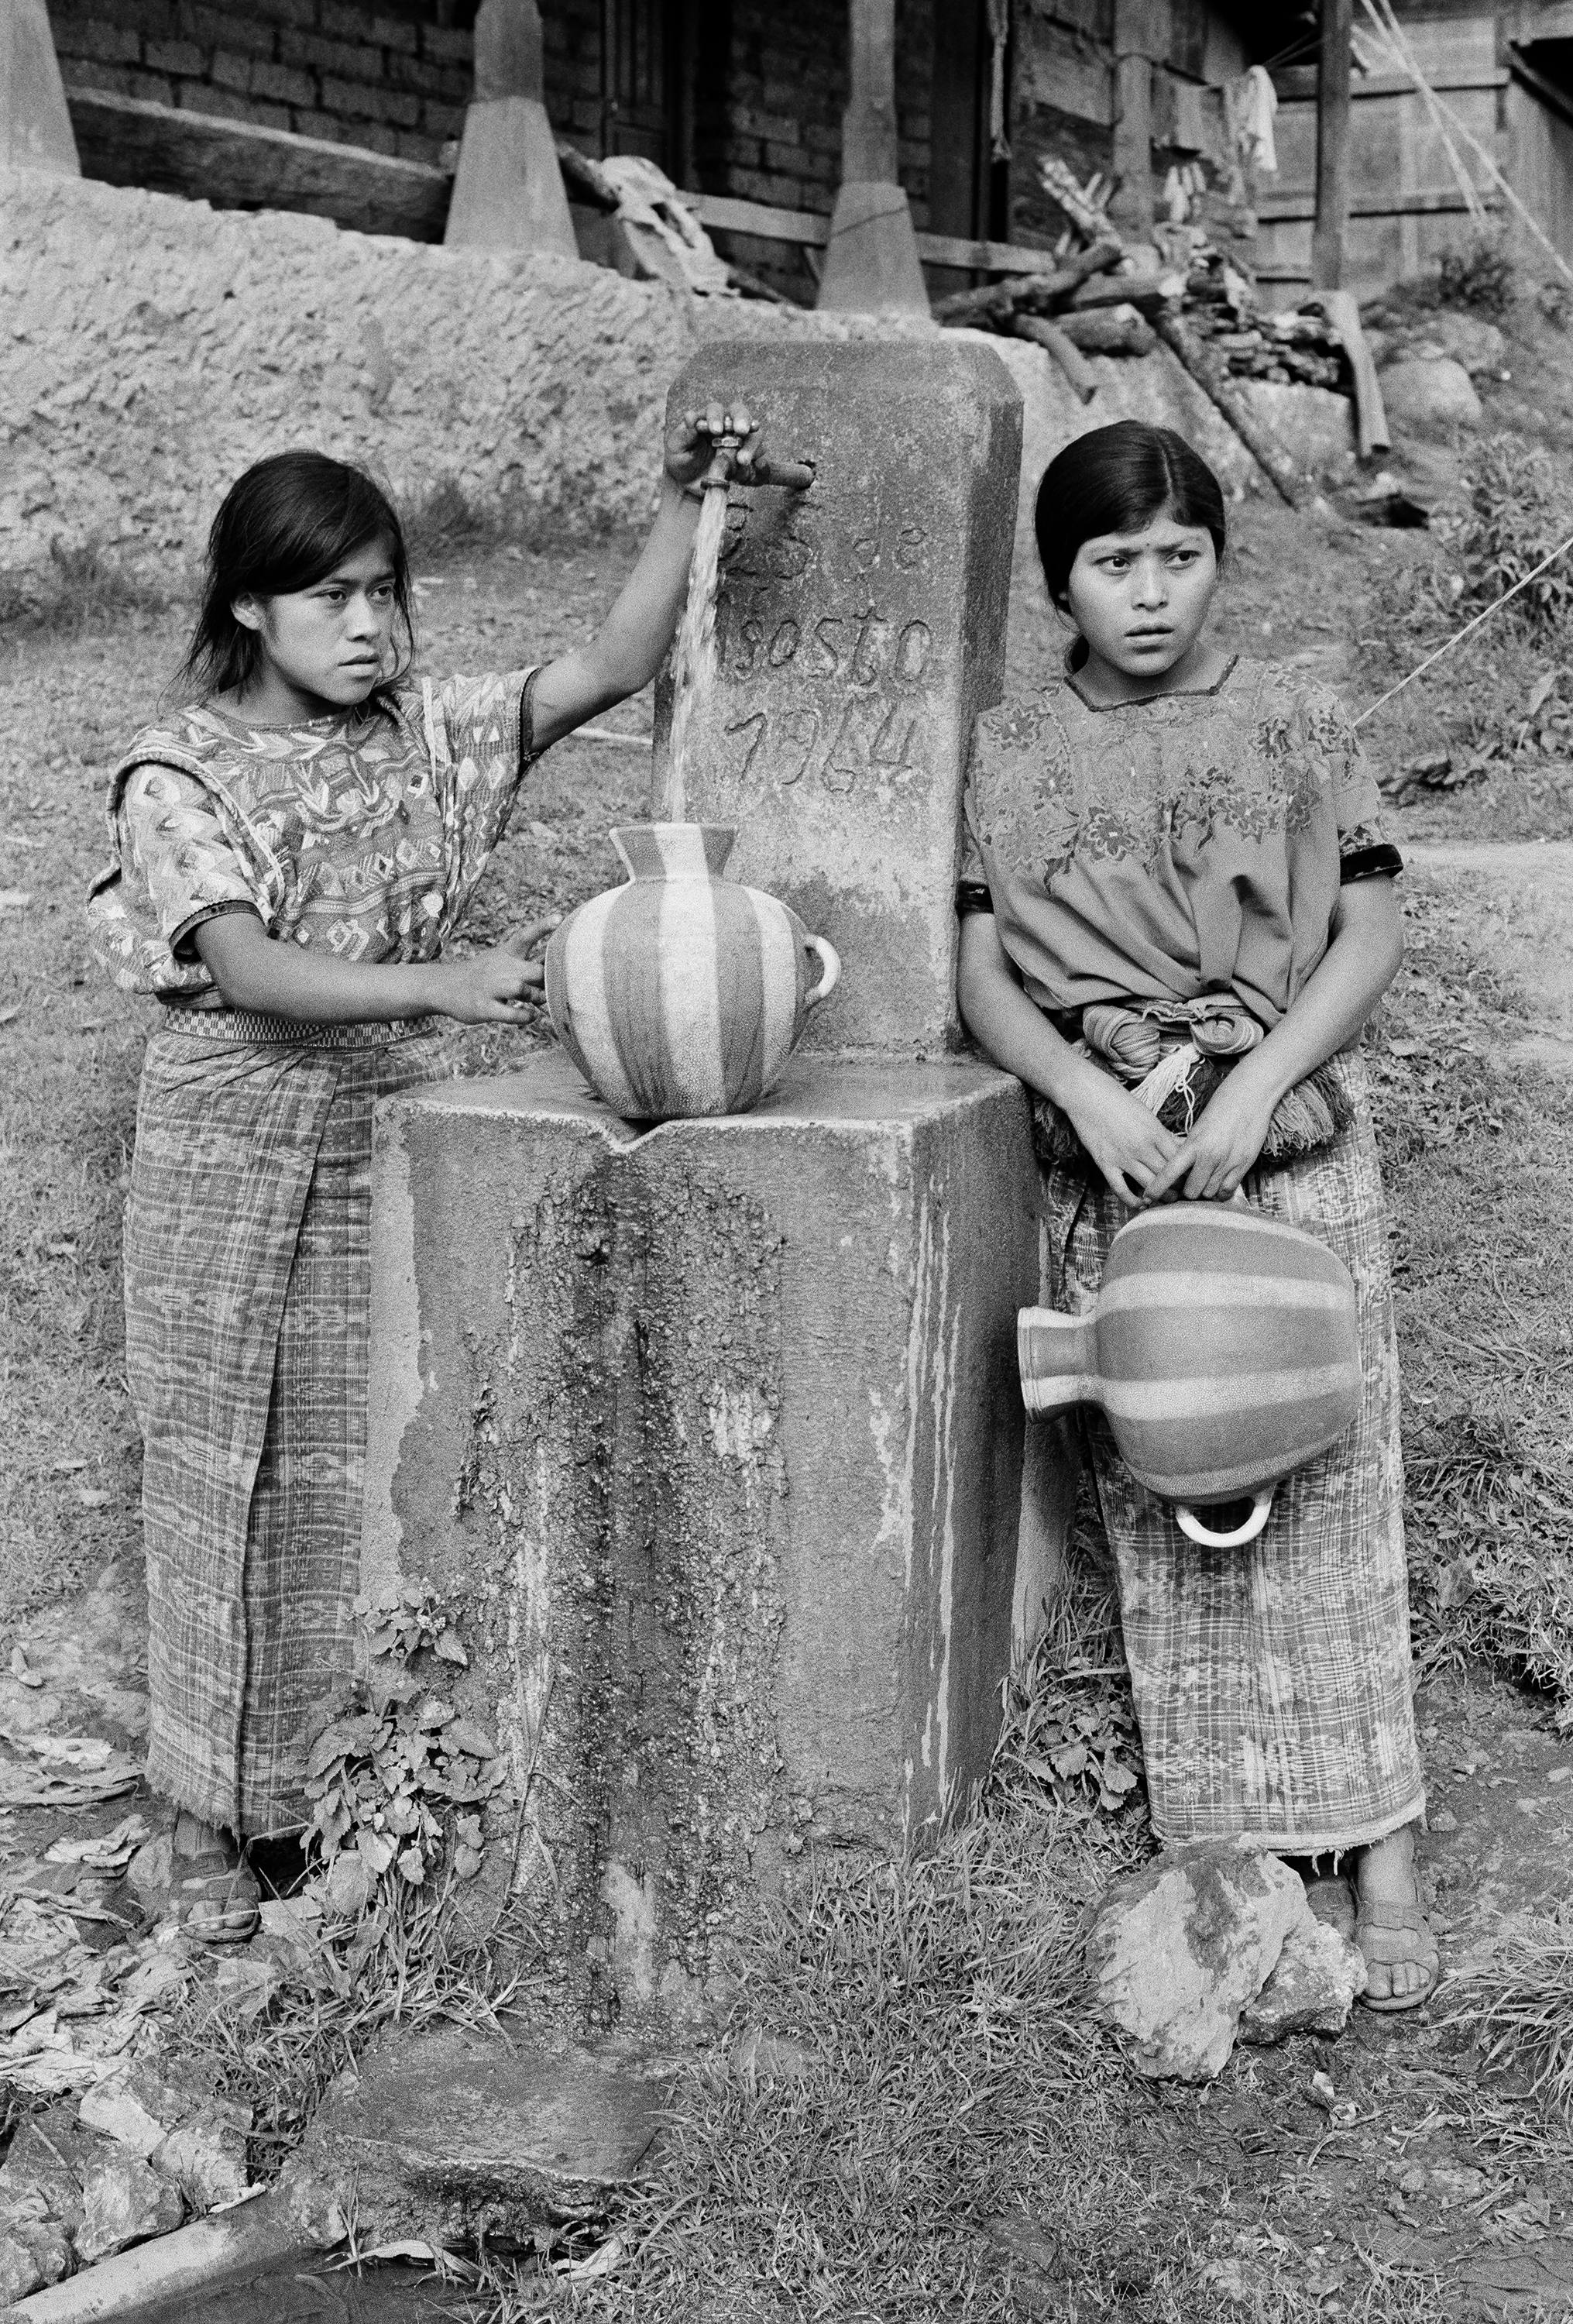 Two Ixil Maya women, Juana Cordova Marroquin, 20 years, left, and Manuela Cordova Ordoñez, 19 years, right, retrieve water following an early morning gun battle between 300 leftist guerrillas from the Ejército Guerrillero de los Pobres, Guerrilla Army of the Poor, EGP, and Guatemalan army soldiers in San Juan Cotzal, Guatemala, January 20, 1982. The attacking EGP guerrillas killed 37 government soldiers.